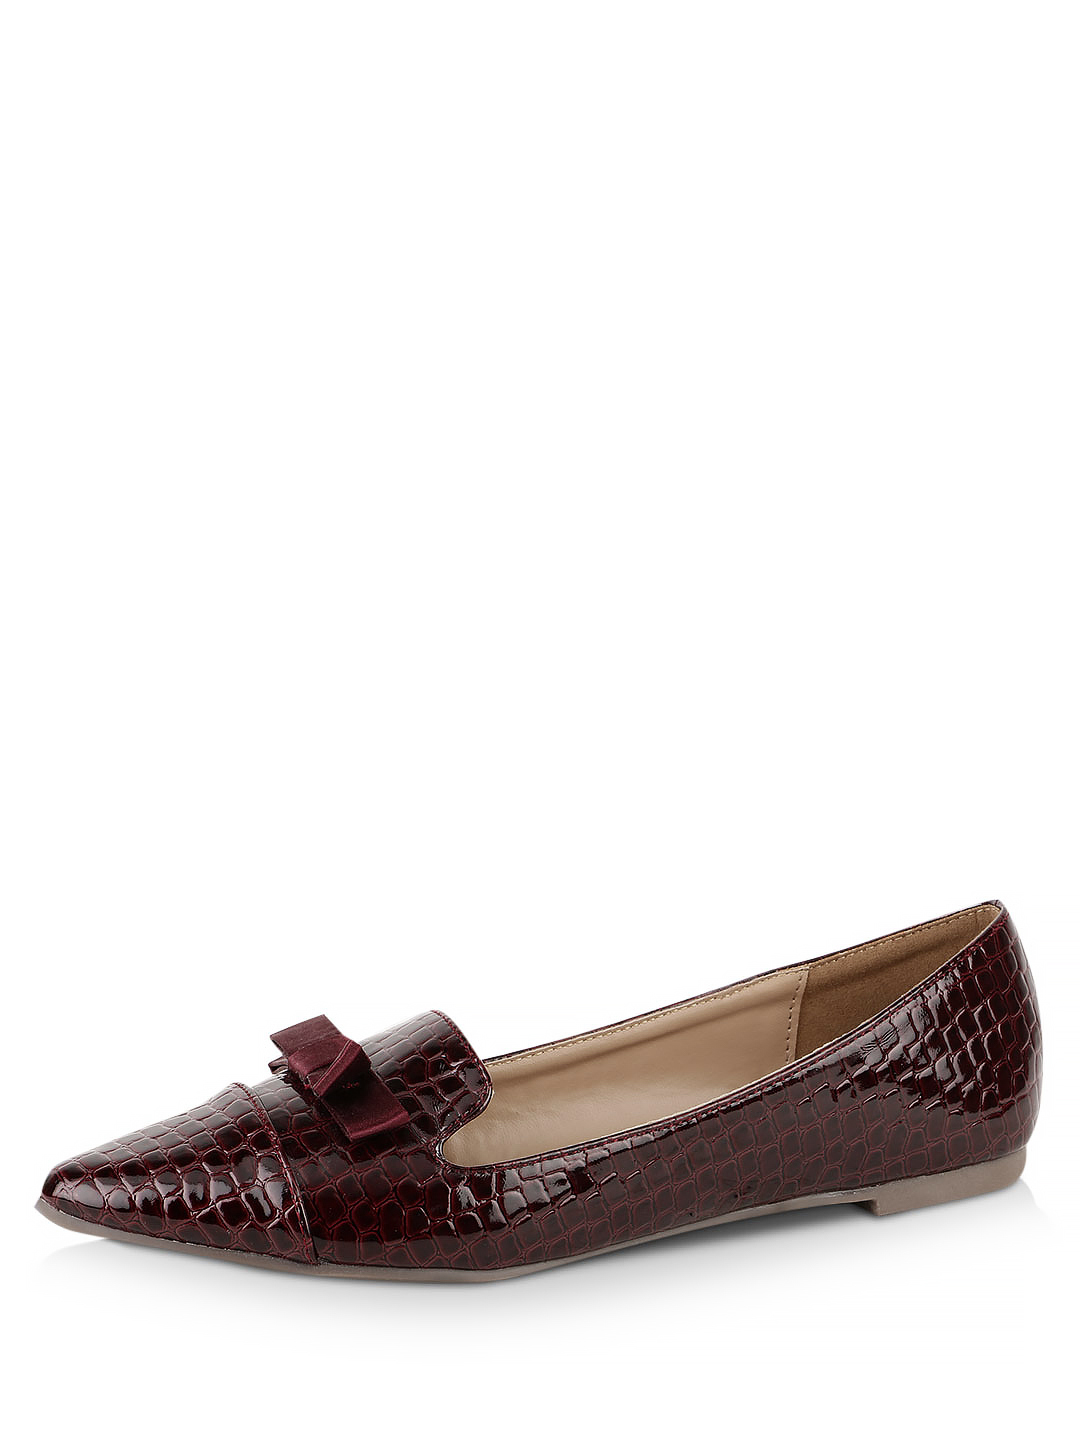 My Foot Couture Marsala Bow Detail Textured Flats 1